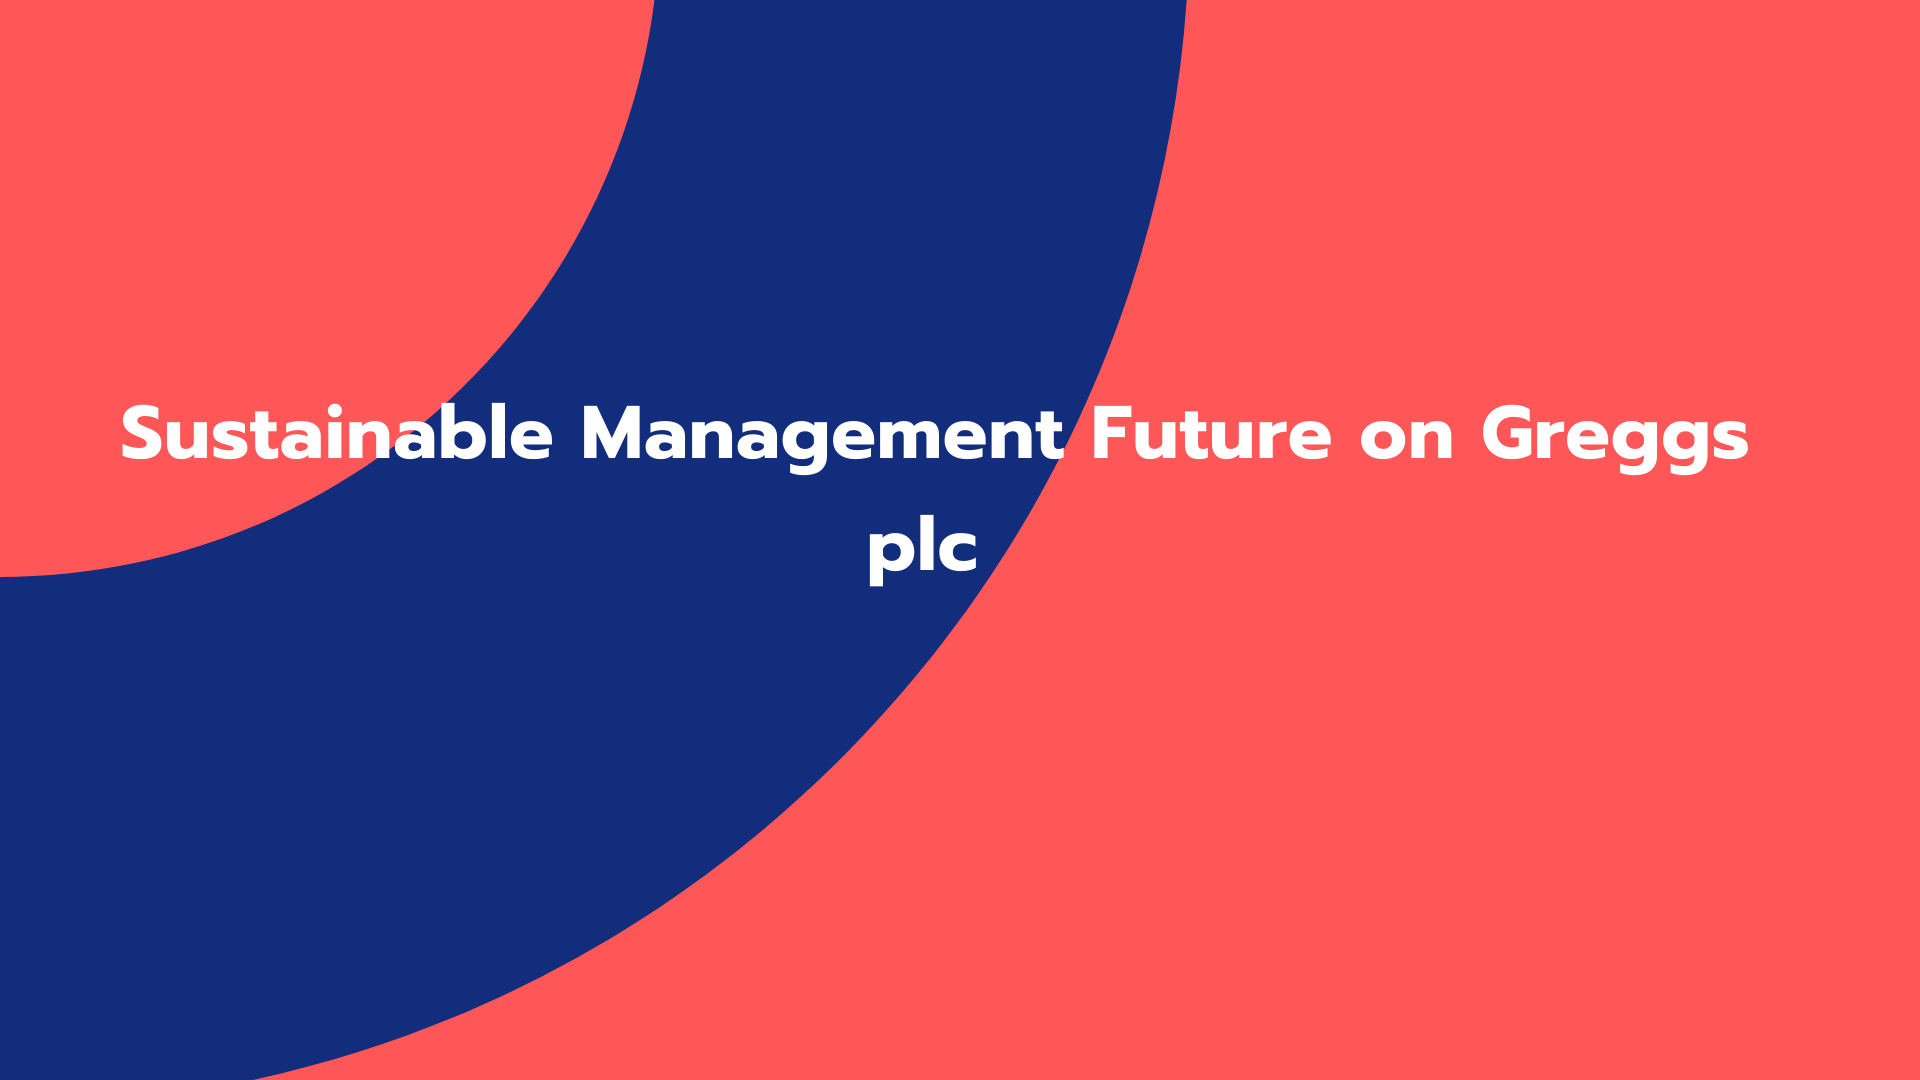 Sustainable Management Future on Greggs plc